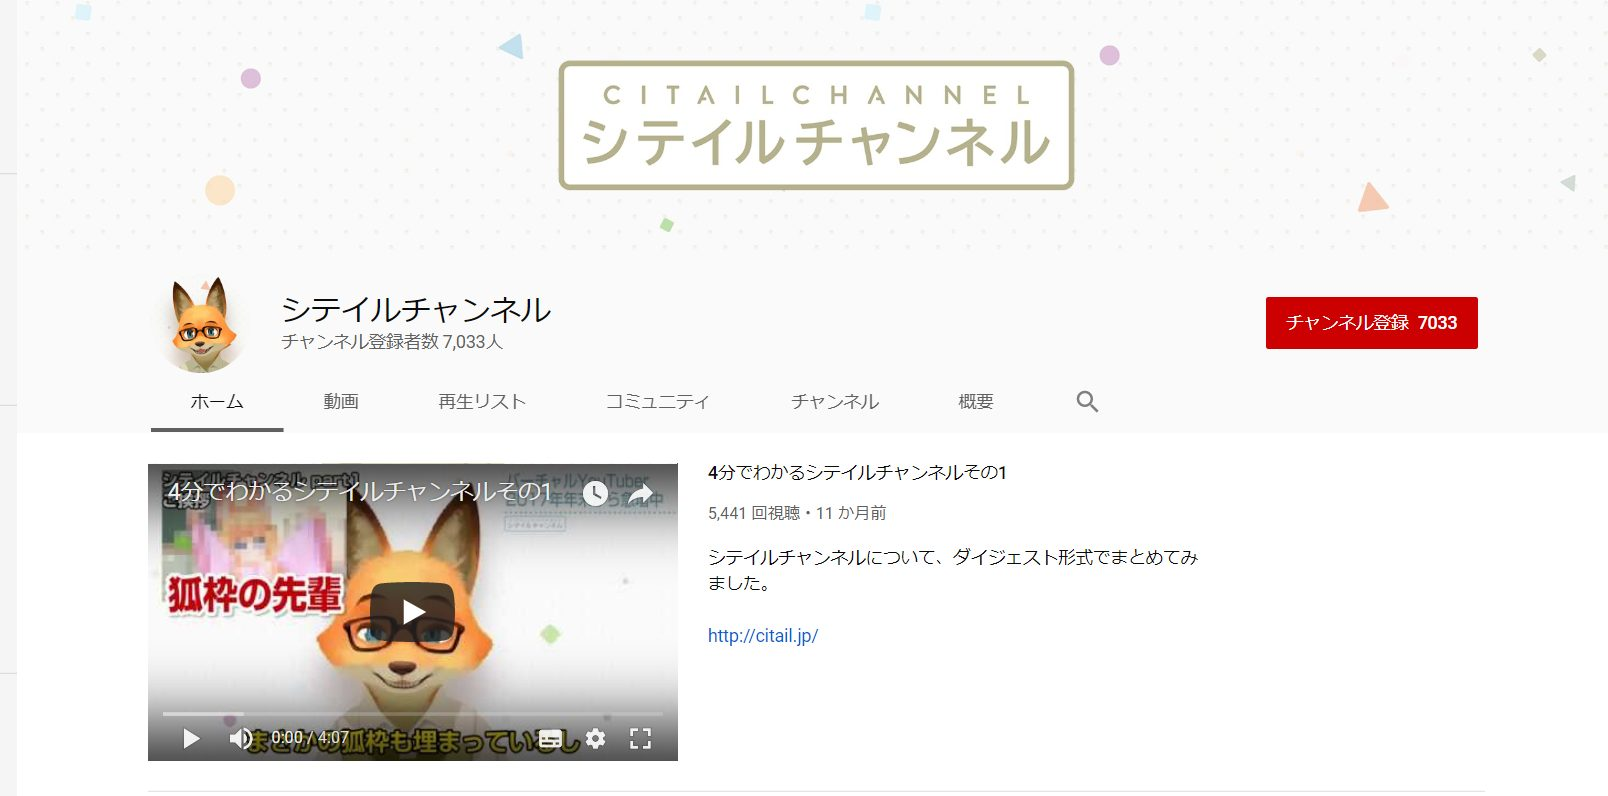 vtuber-shiteiru-channel